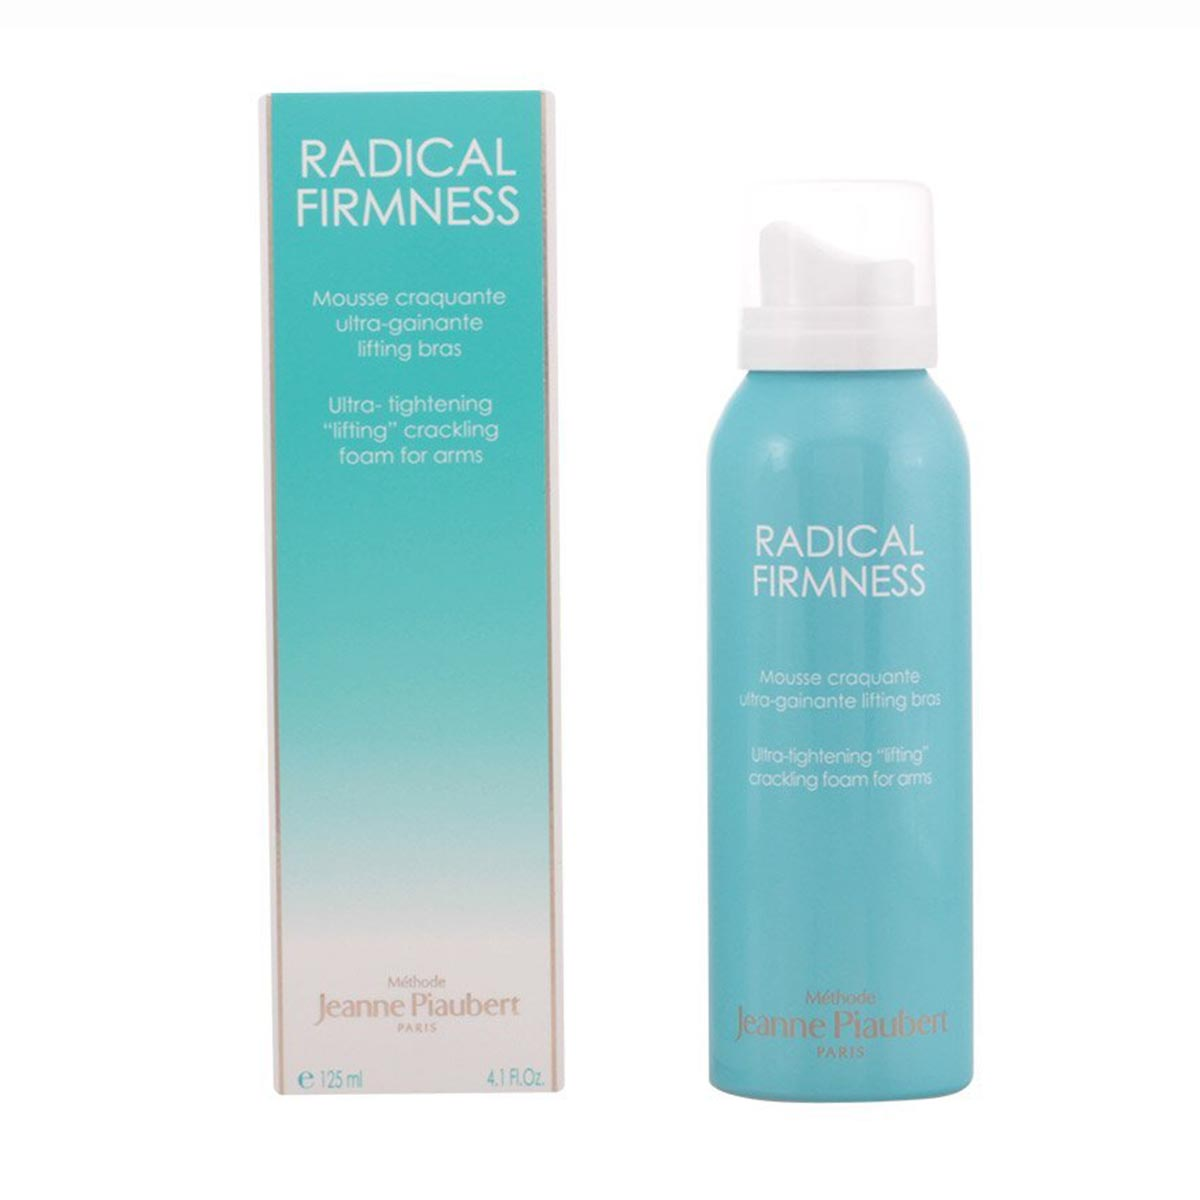 Jeanne piaubert radical firmness ultra tightening foam for arms 125ml